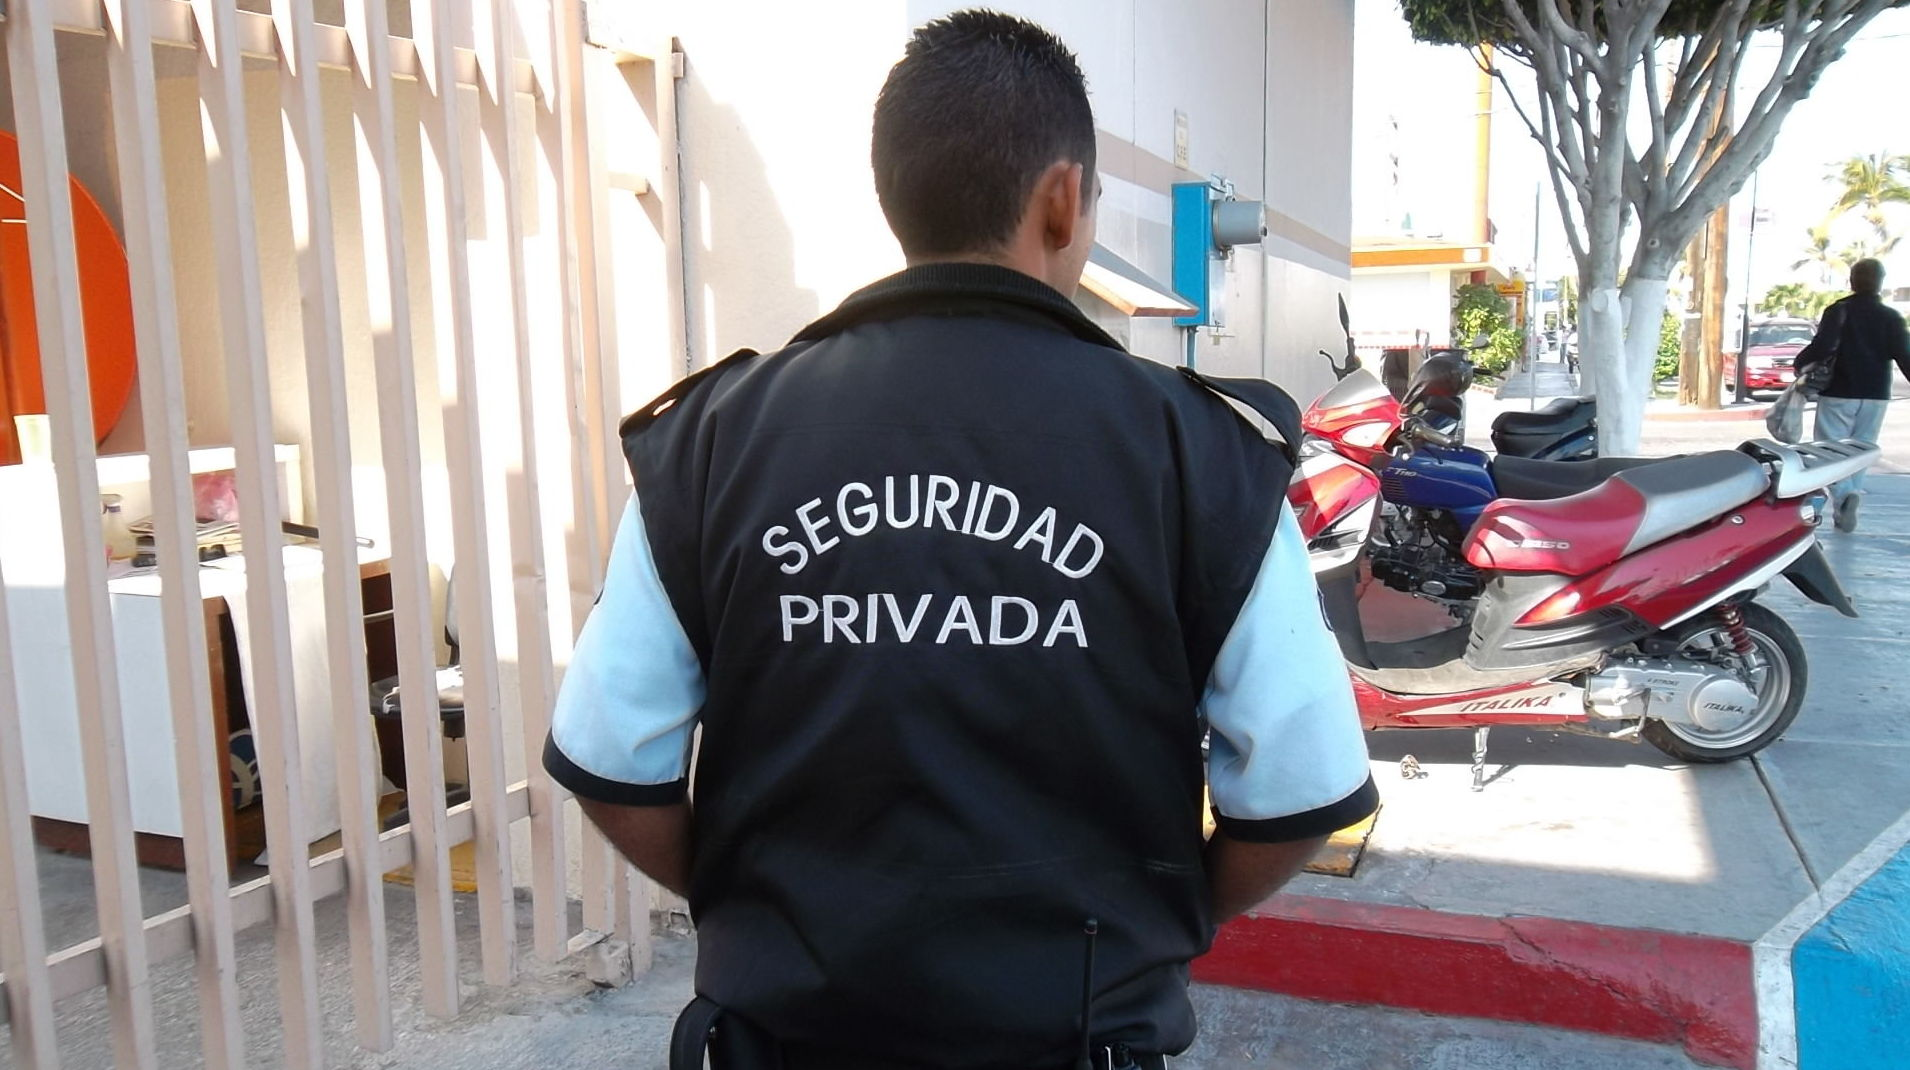 Certificados seguridad privada Usera  - Madrid